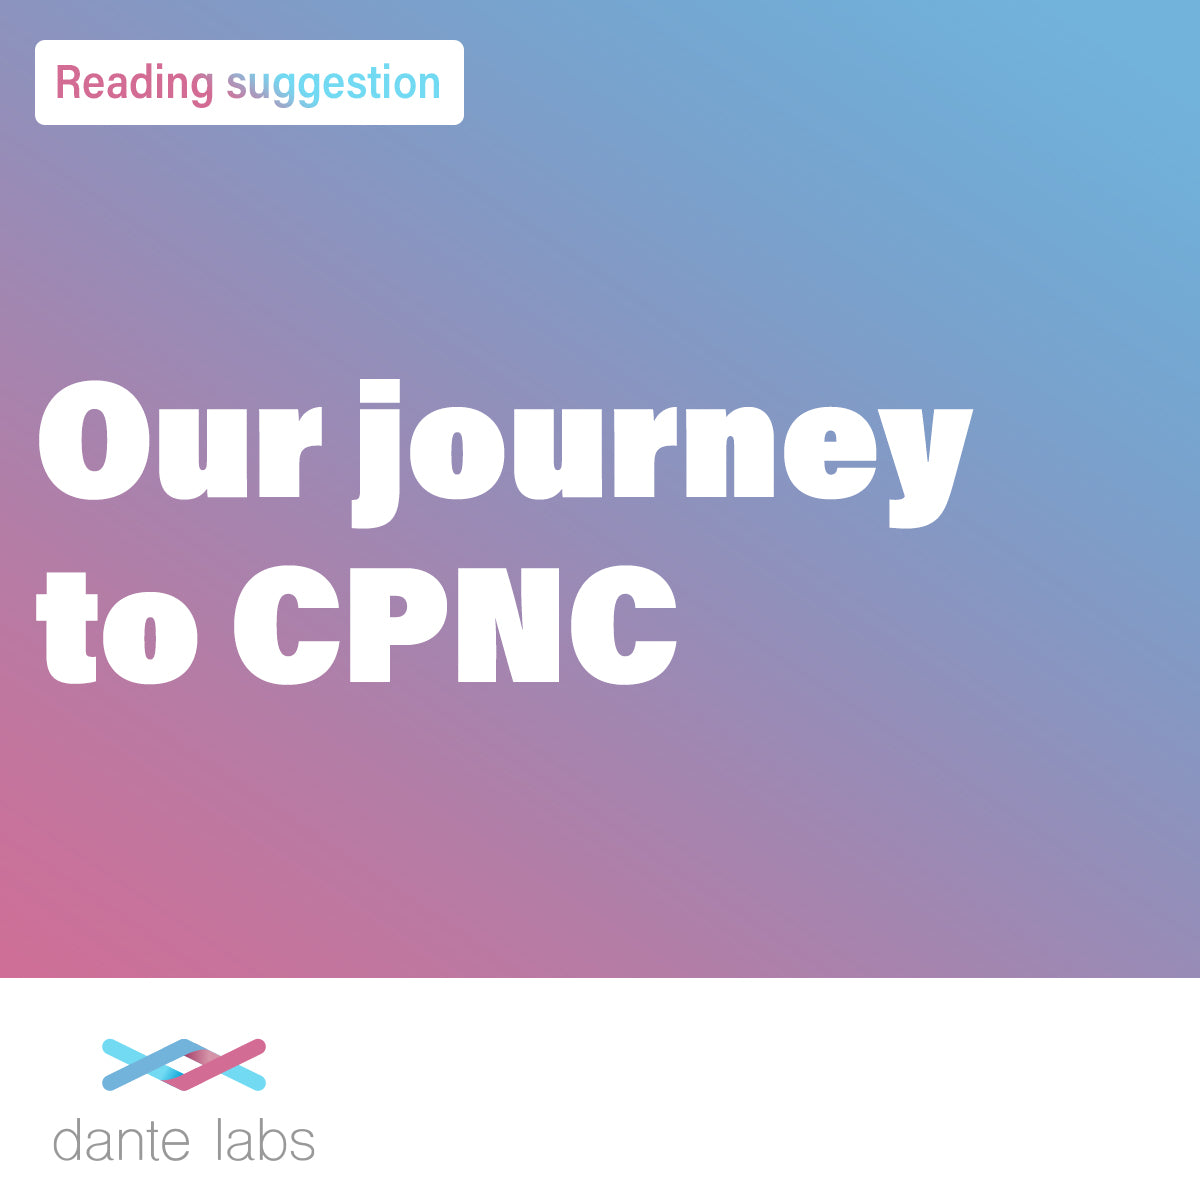 Our journey to CPNC